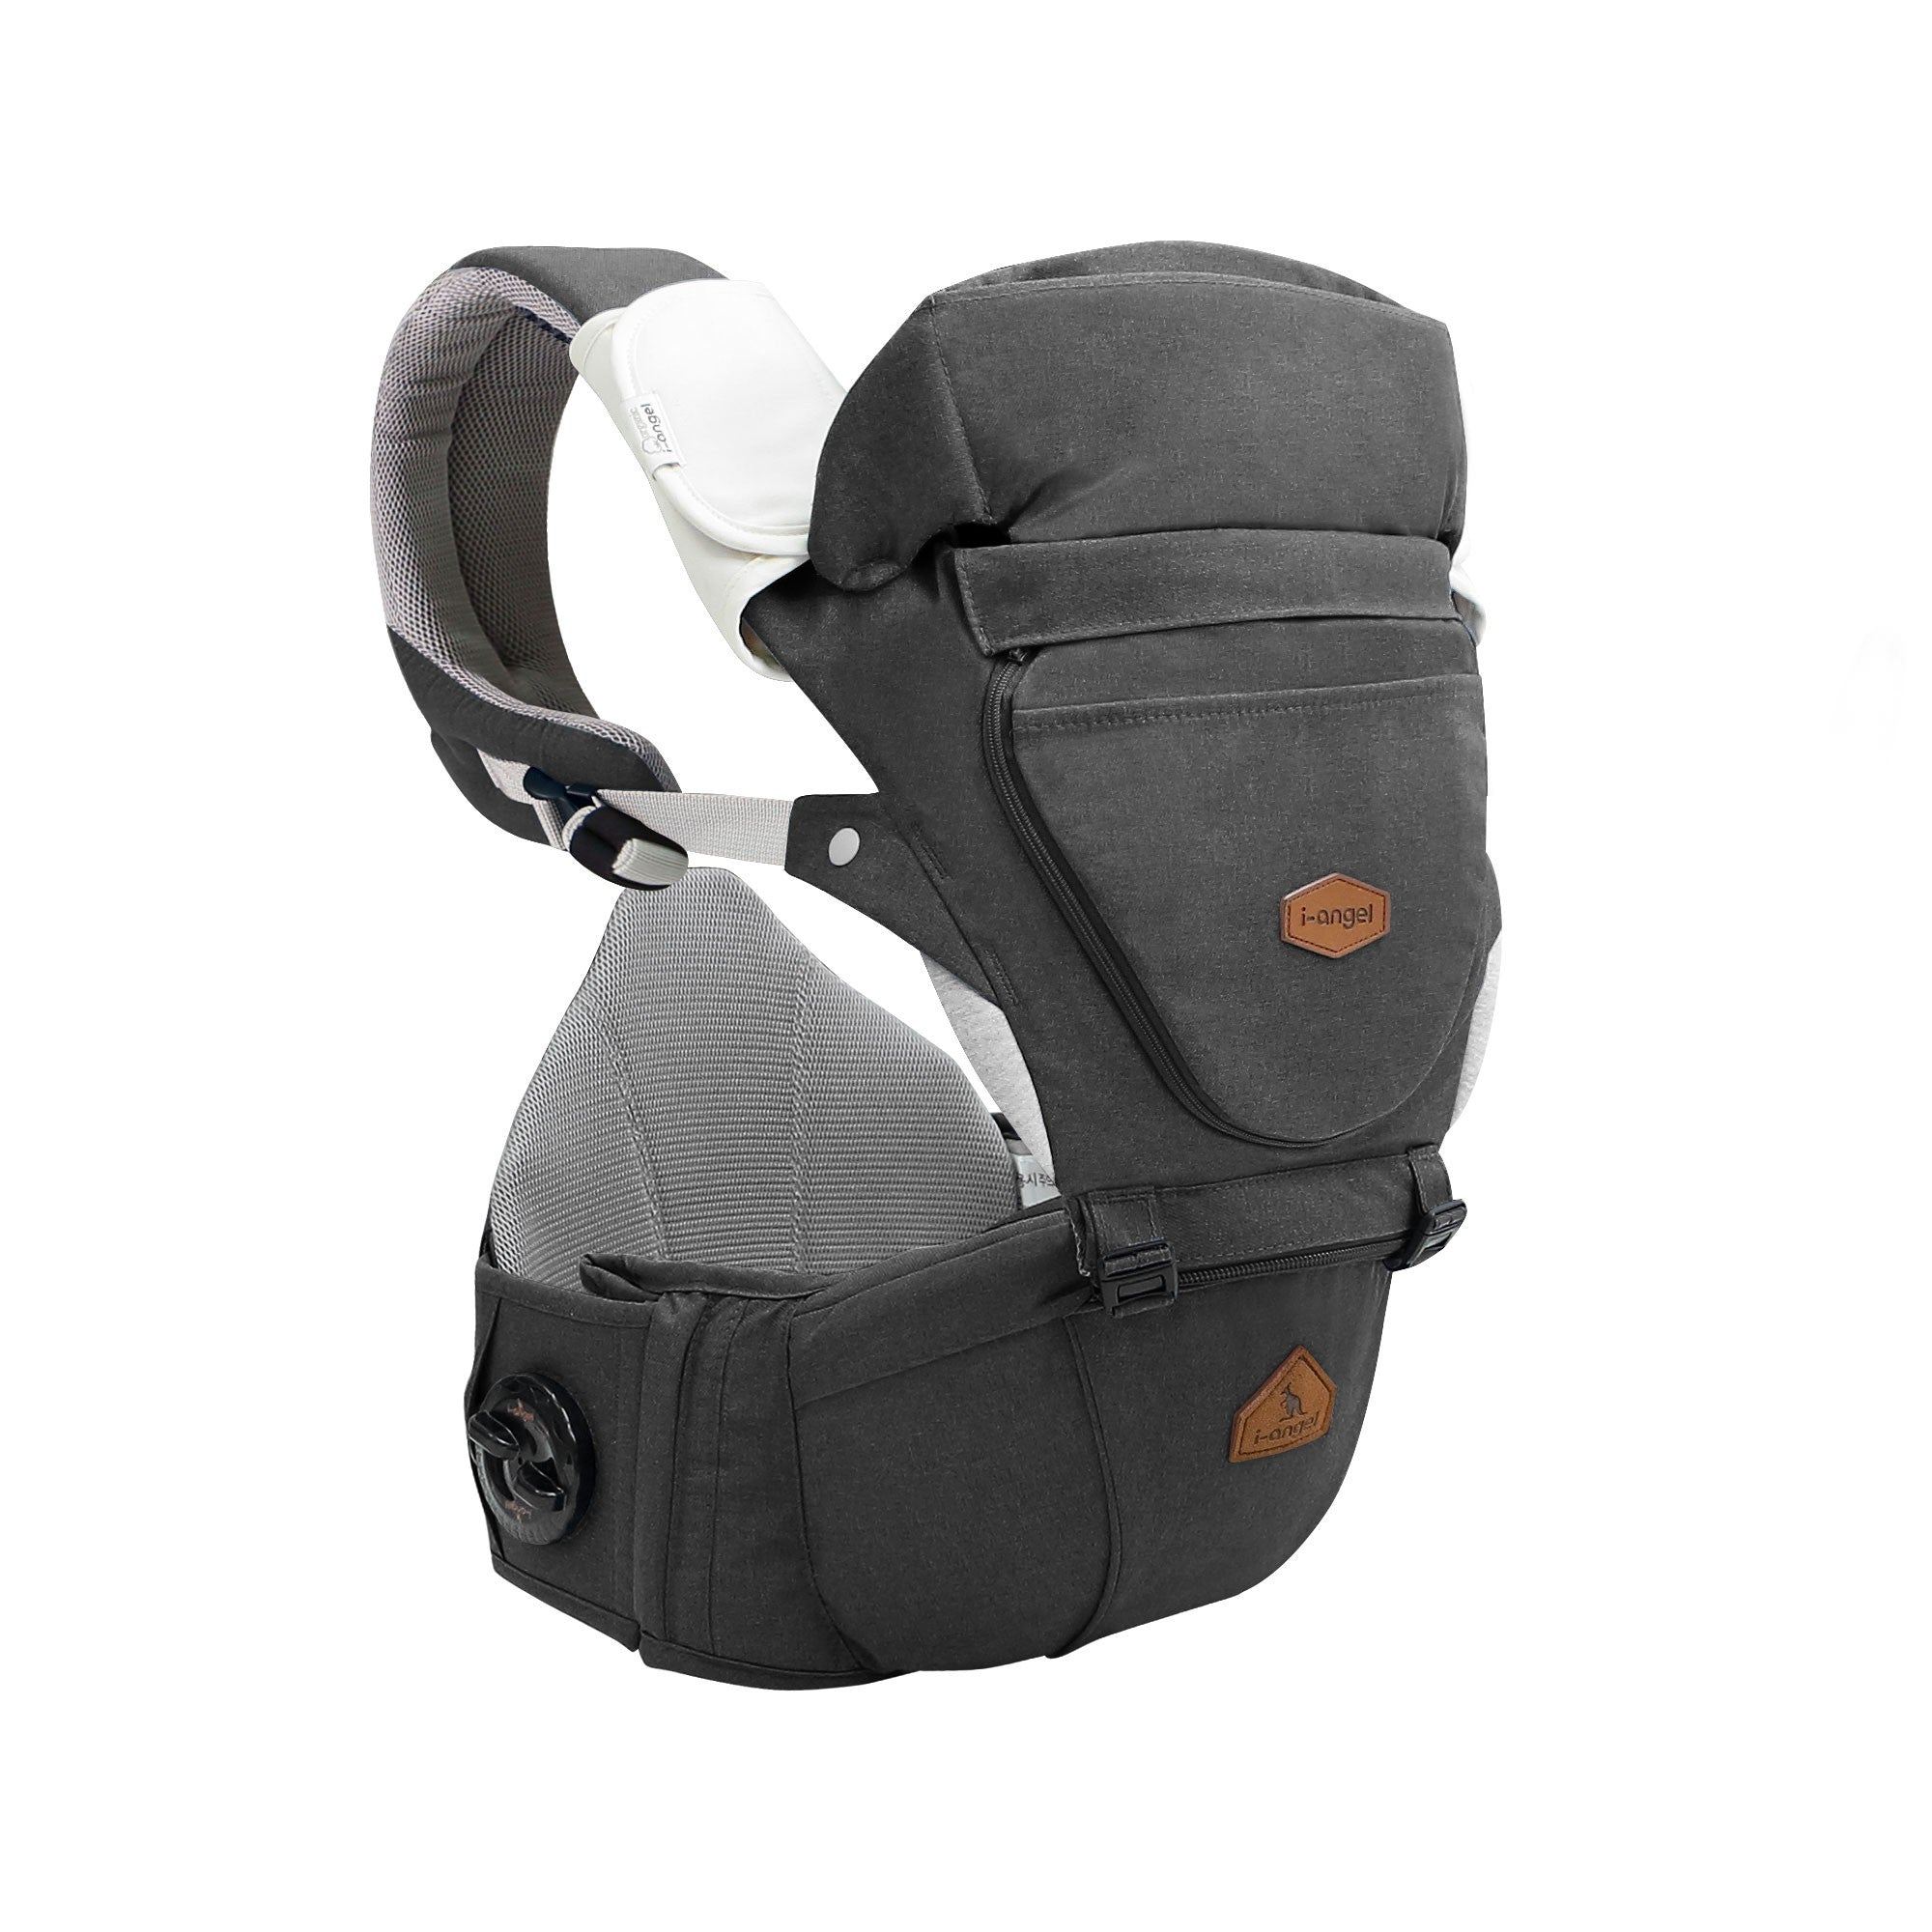 I-ANGEL HIPSEAT CARRIER - Dr. Dial - Mighty Baby PH